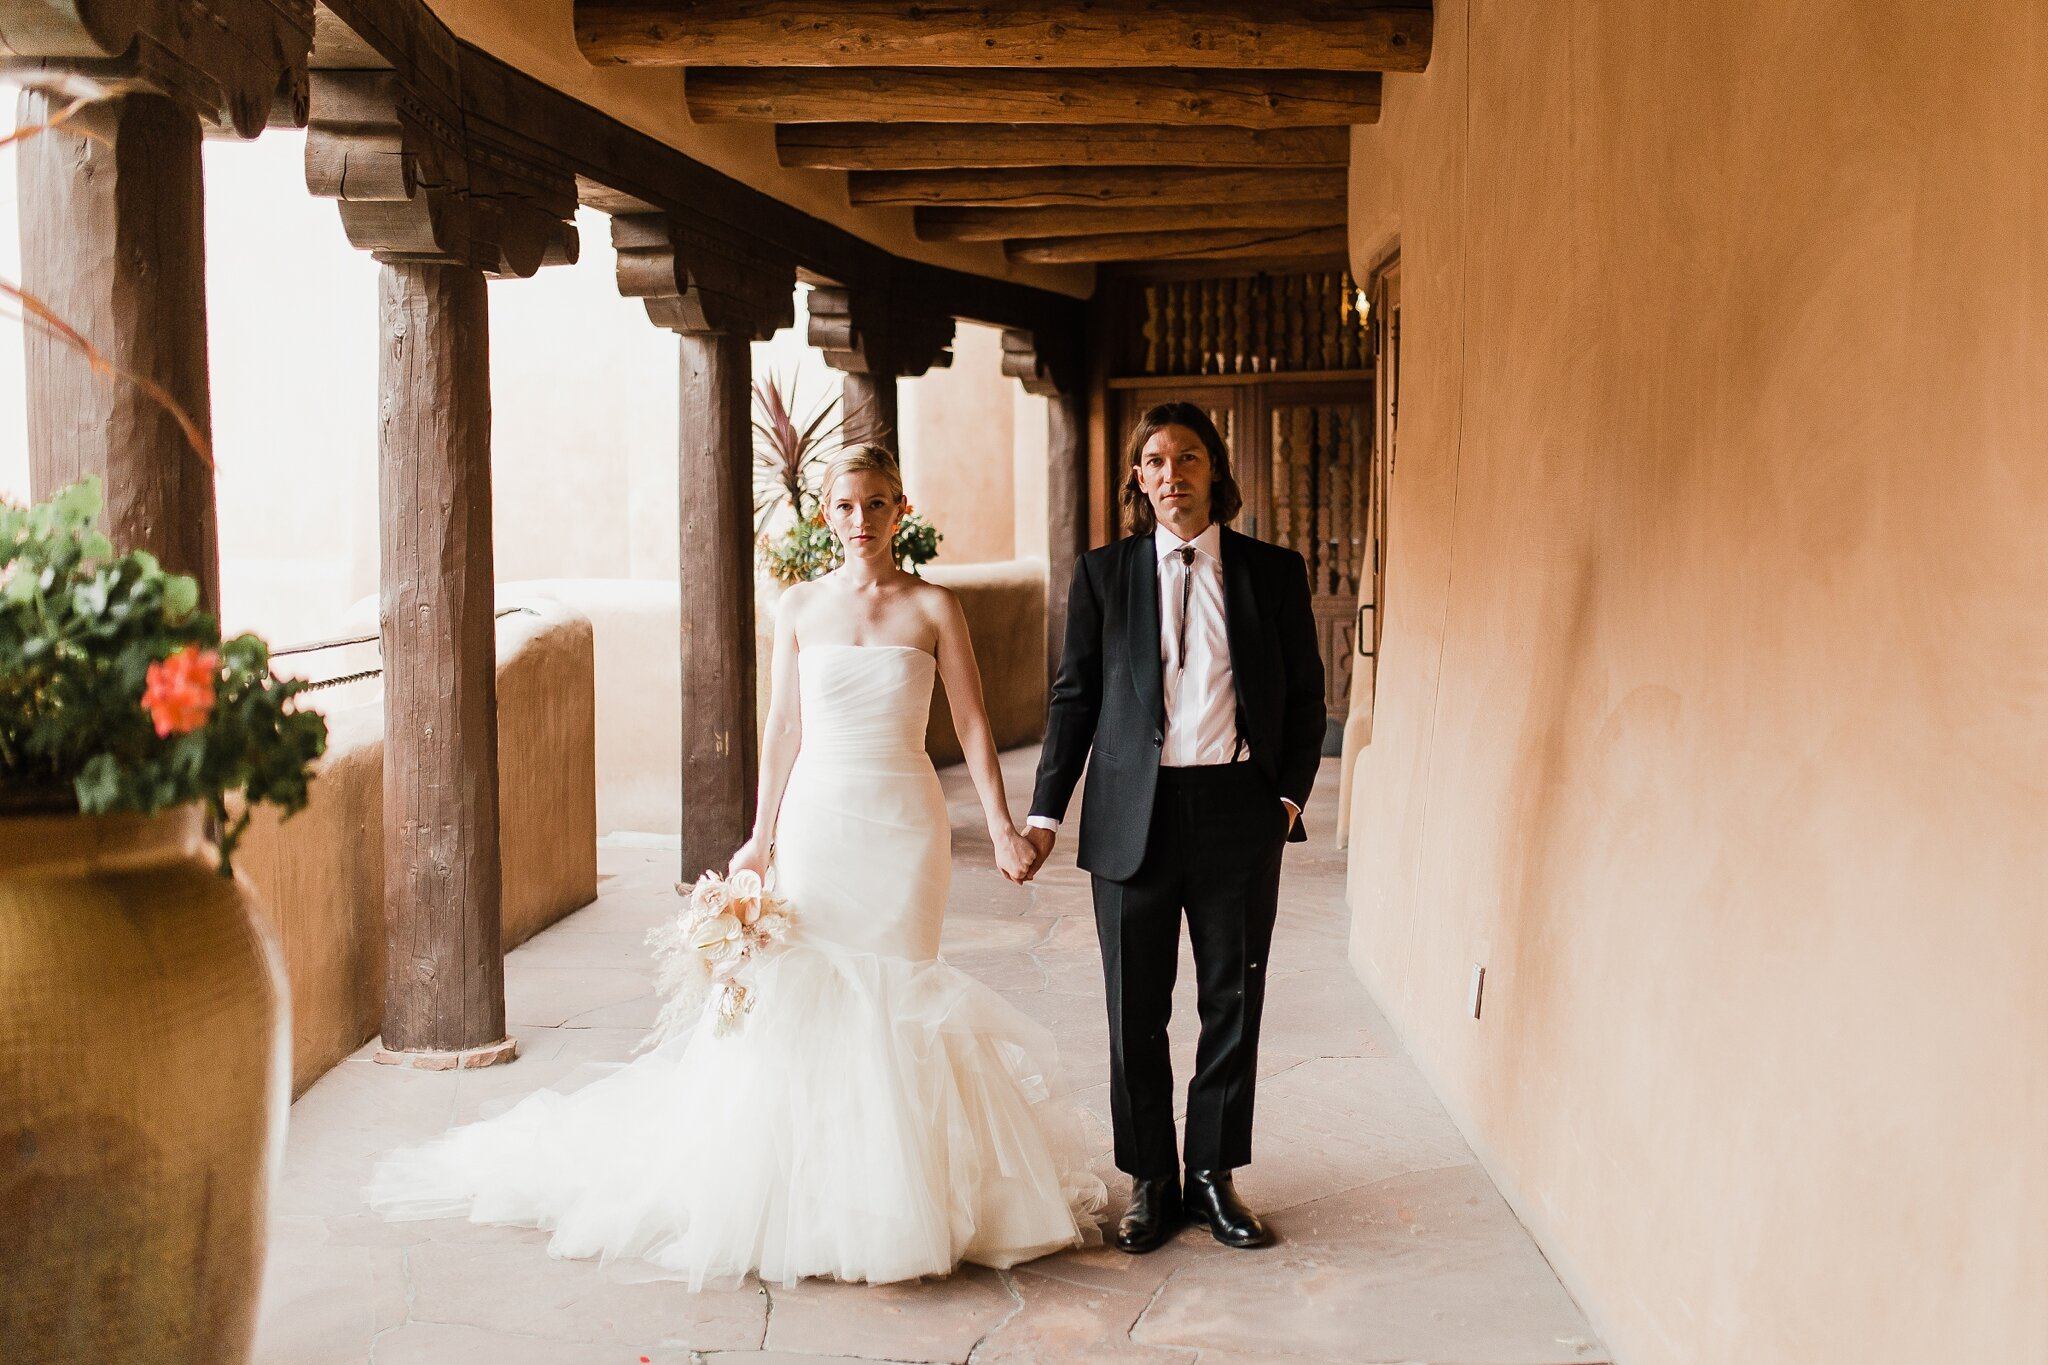 Alicia+lucia+photography+-+albuquerque+wedding+photographer+-+santa+fe+wedding+photography+-+new+mexico+wedding+photographer+-+new+mexico+wedding+-+la+fonda+wedding+-+la+fonda+on+the+plaza+-+santa+fe+wedding+-+brooklyn+bride_0068.jpg